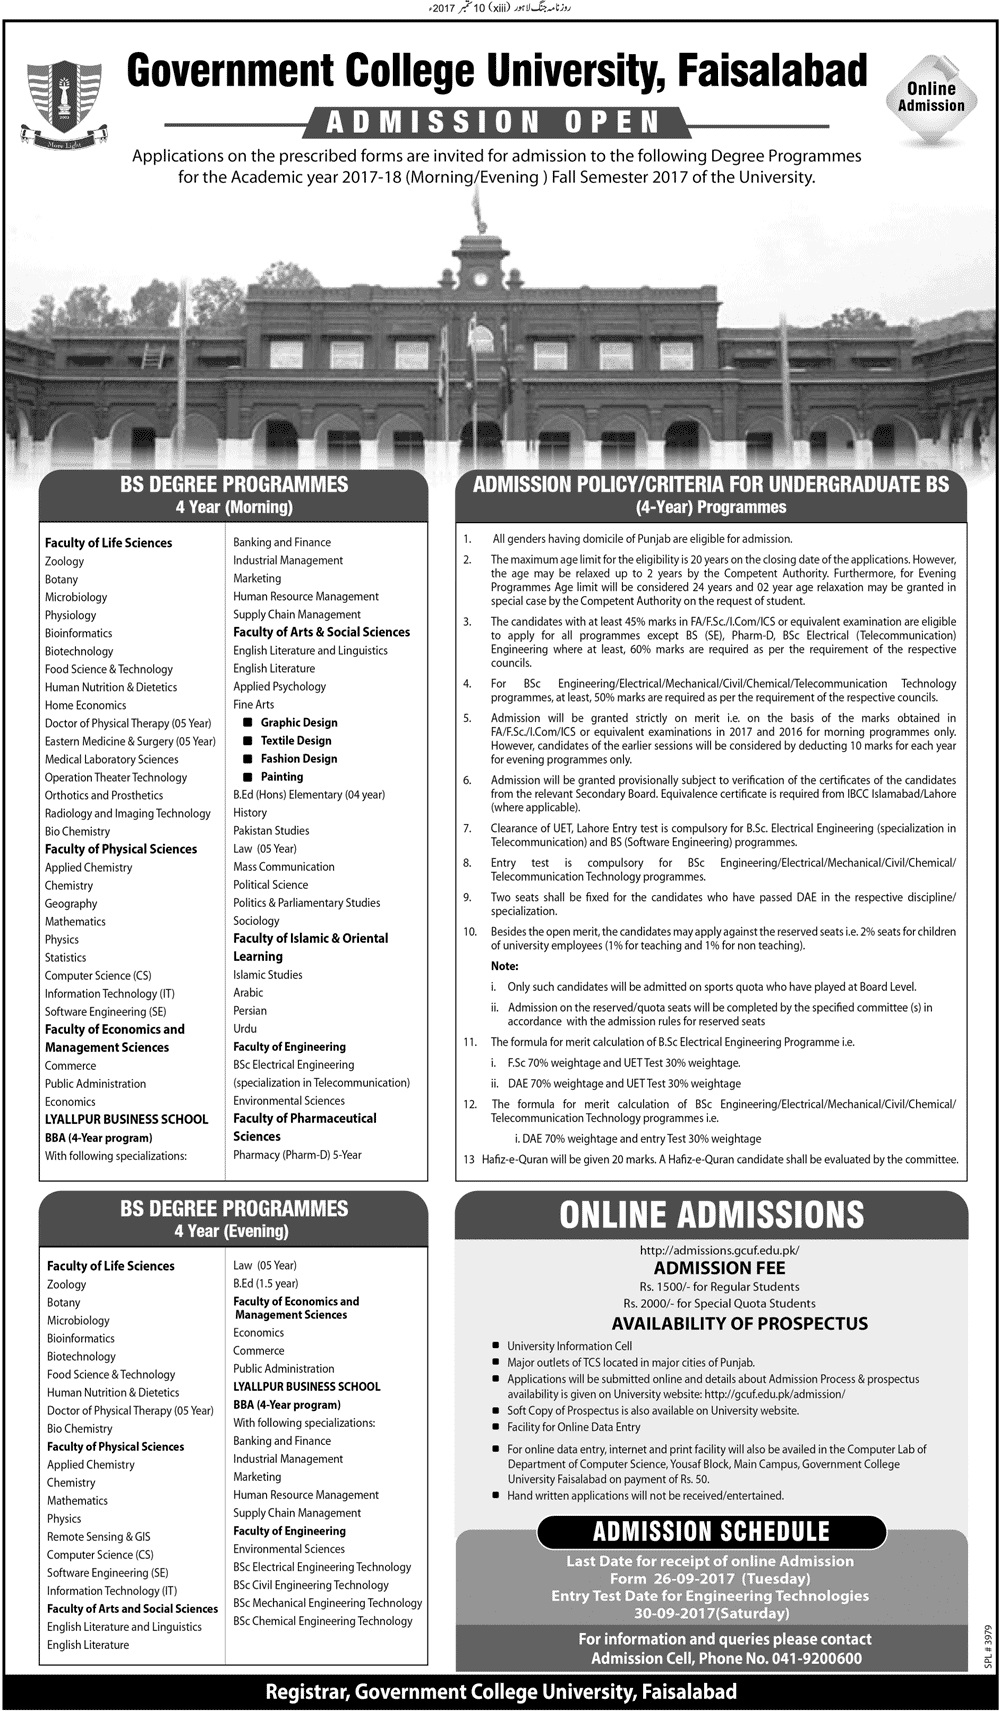 GC University Faisalabad BS Admission 2017 Online Form, Entry Test Result